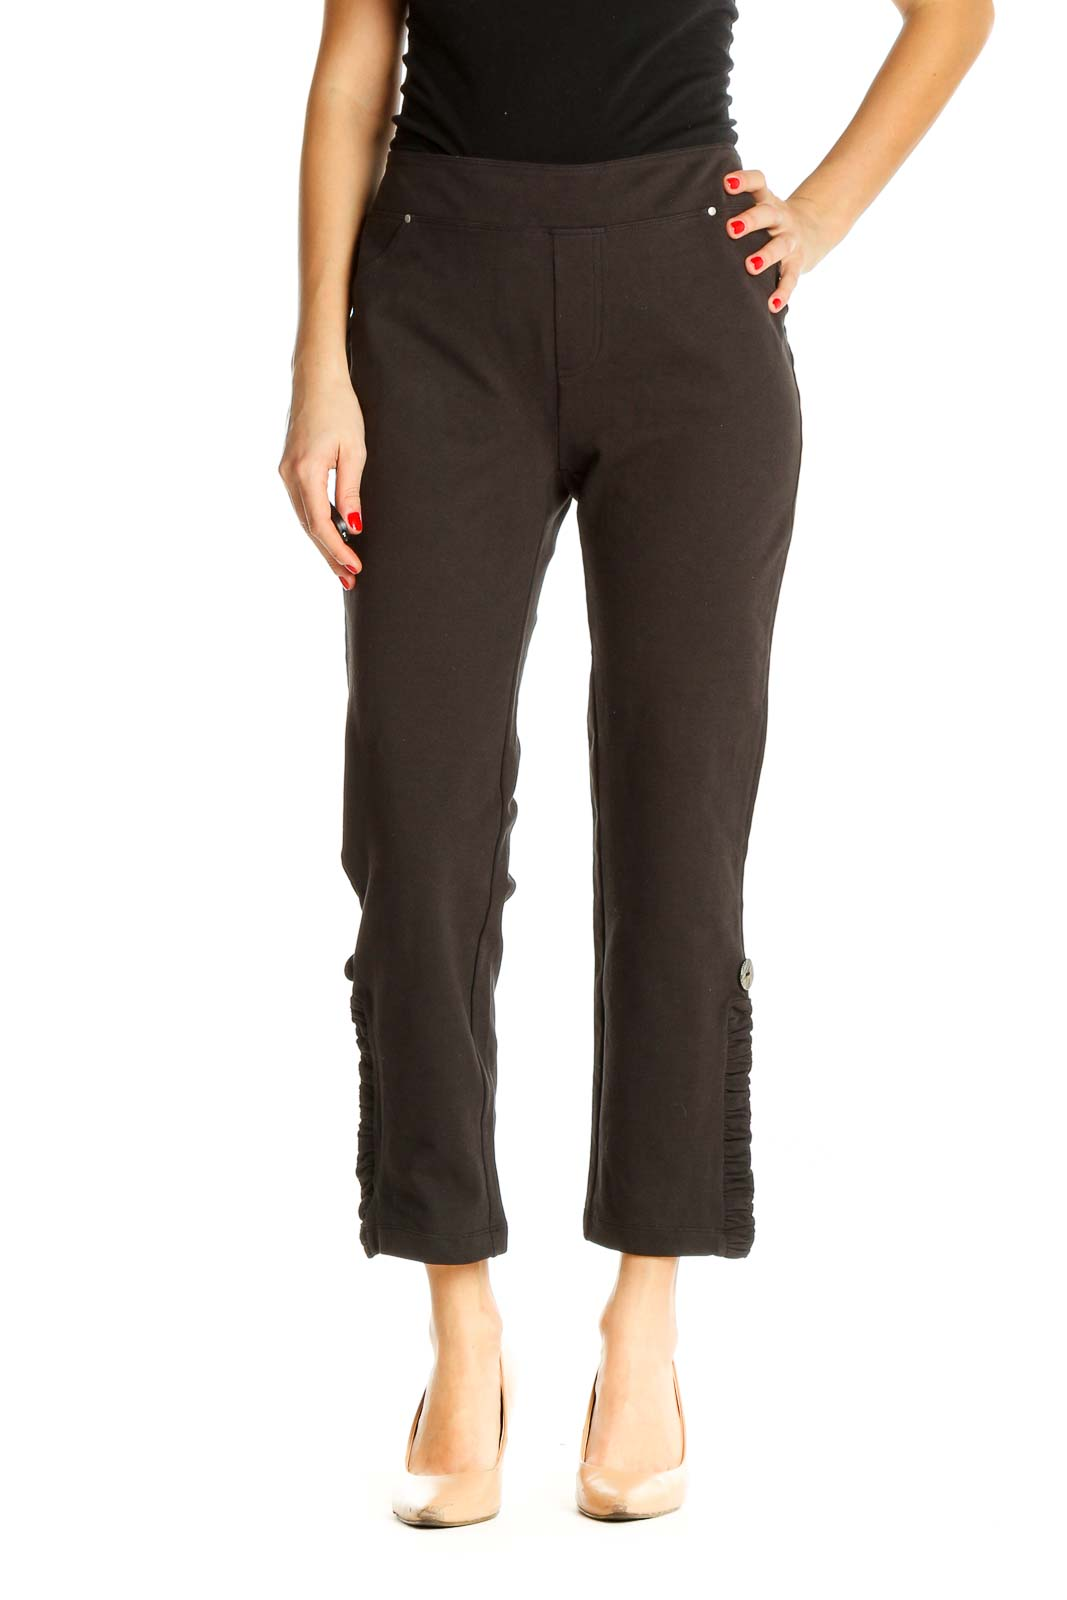 Brown Solid All Day Wear Capri Pants Front